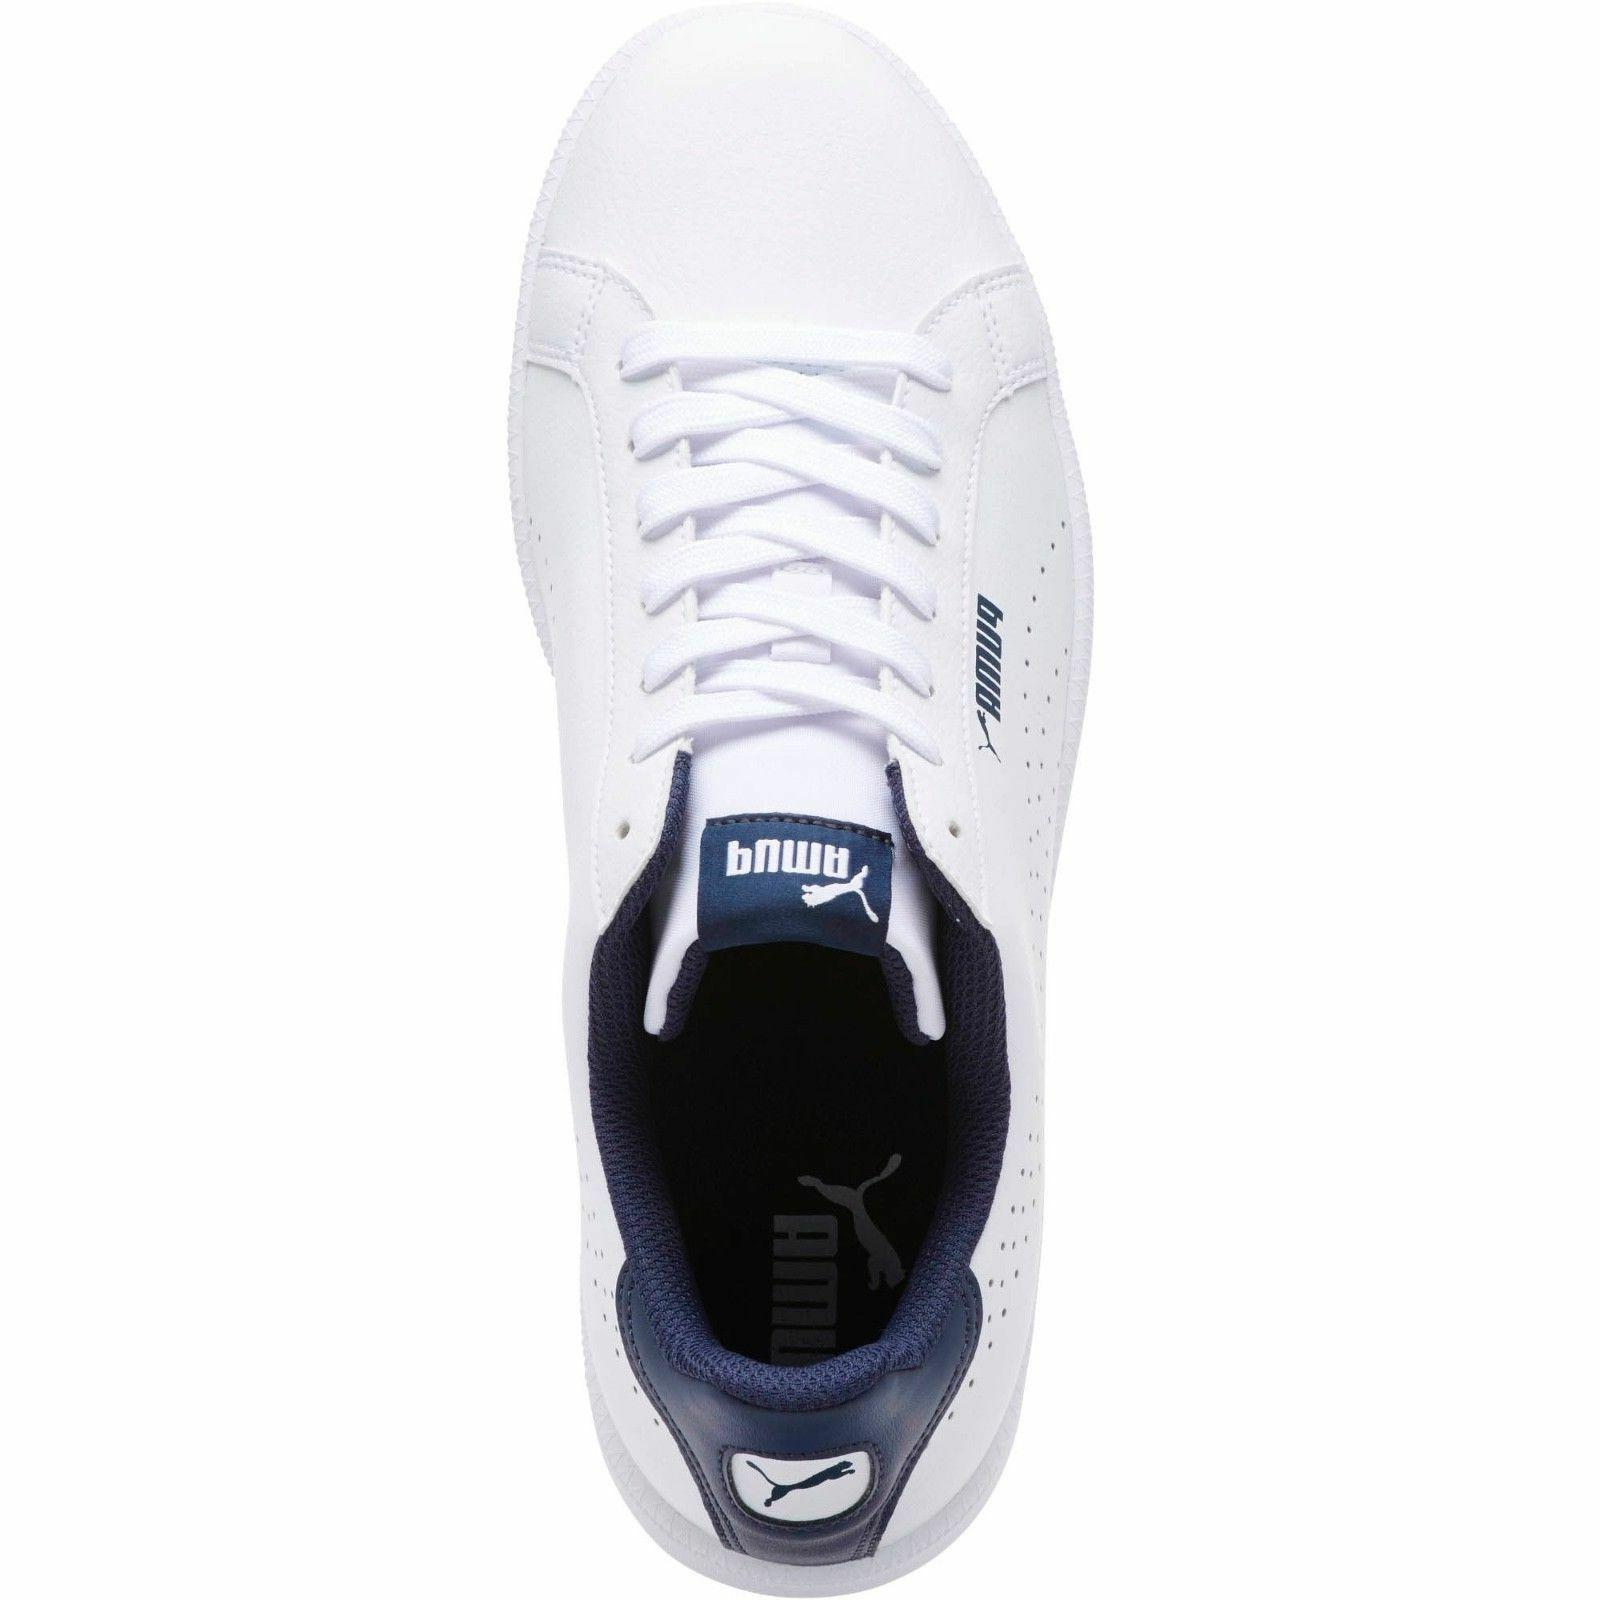 *NEW* Perf C White Leather Sneakers Tennis Shoe